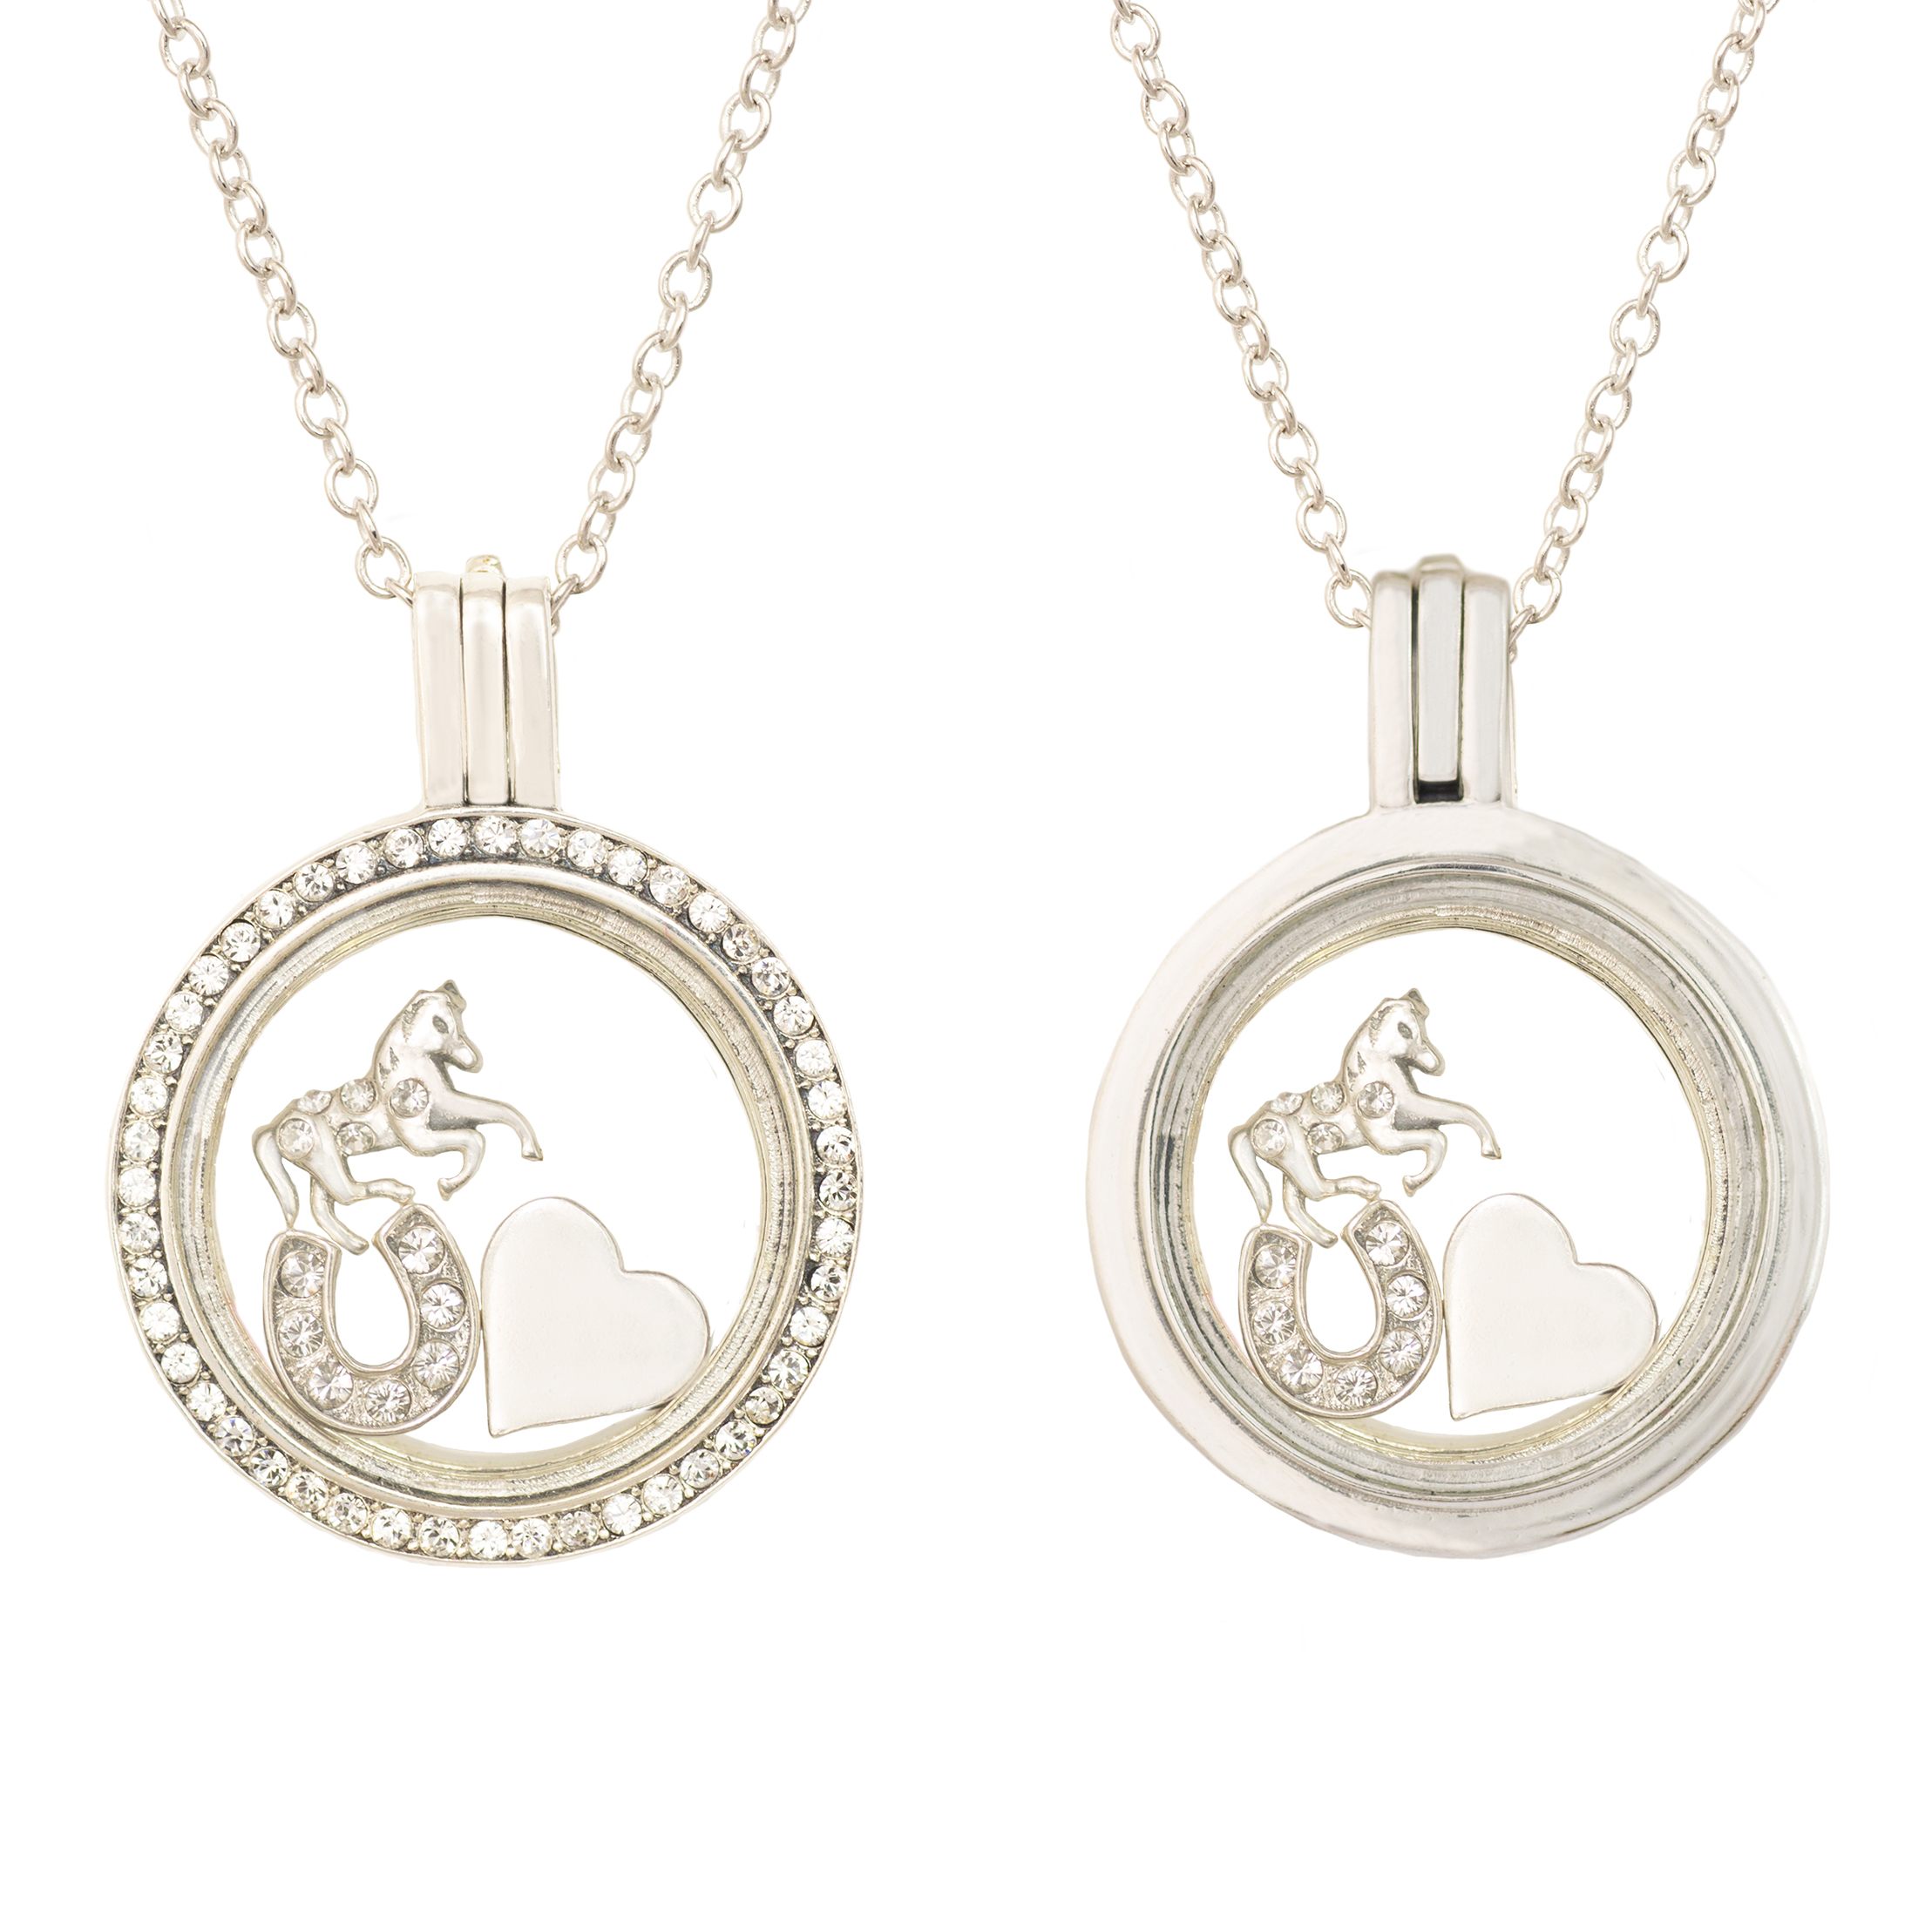 diamond over preciosa lockets ashes orders design memorial on overstock product watches locket cut jewelry silver heart w swirl necklace la sterling cremation laser shipping free